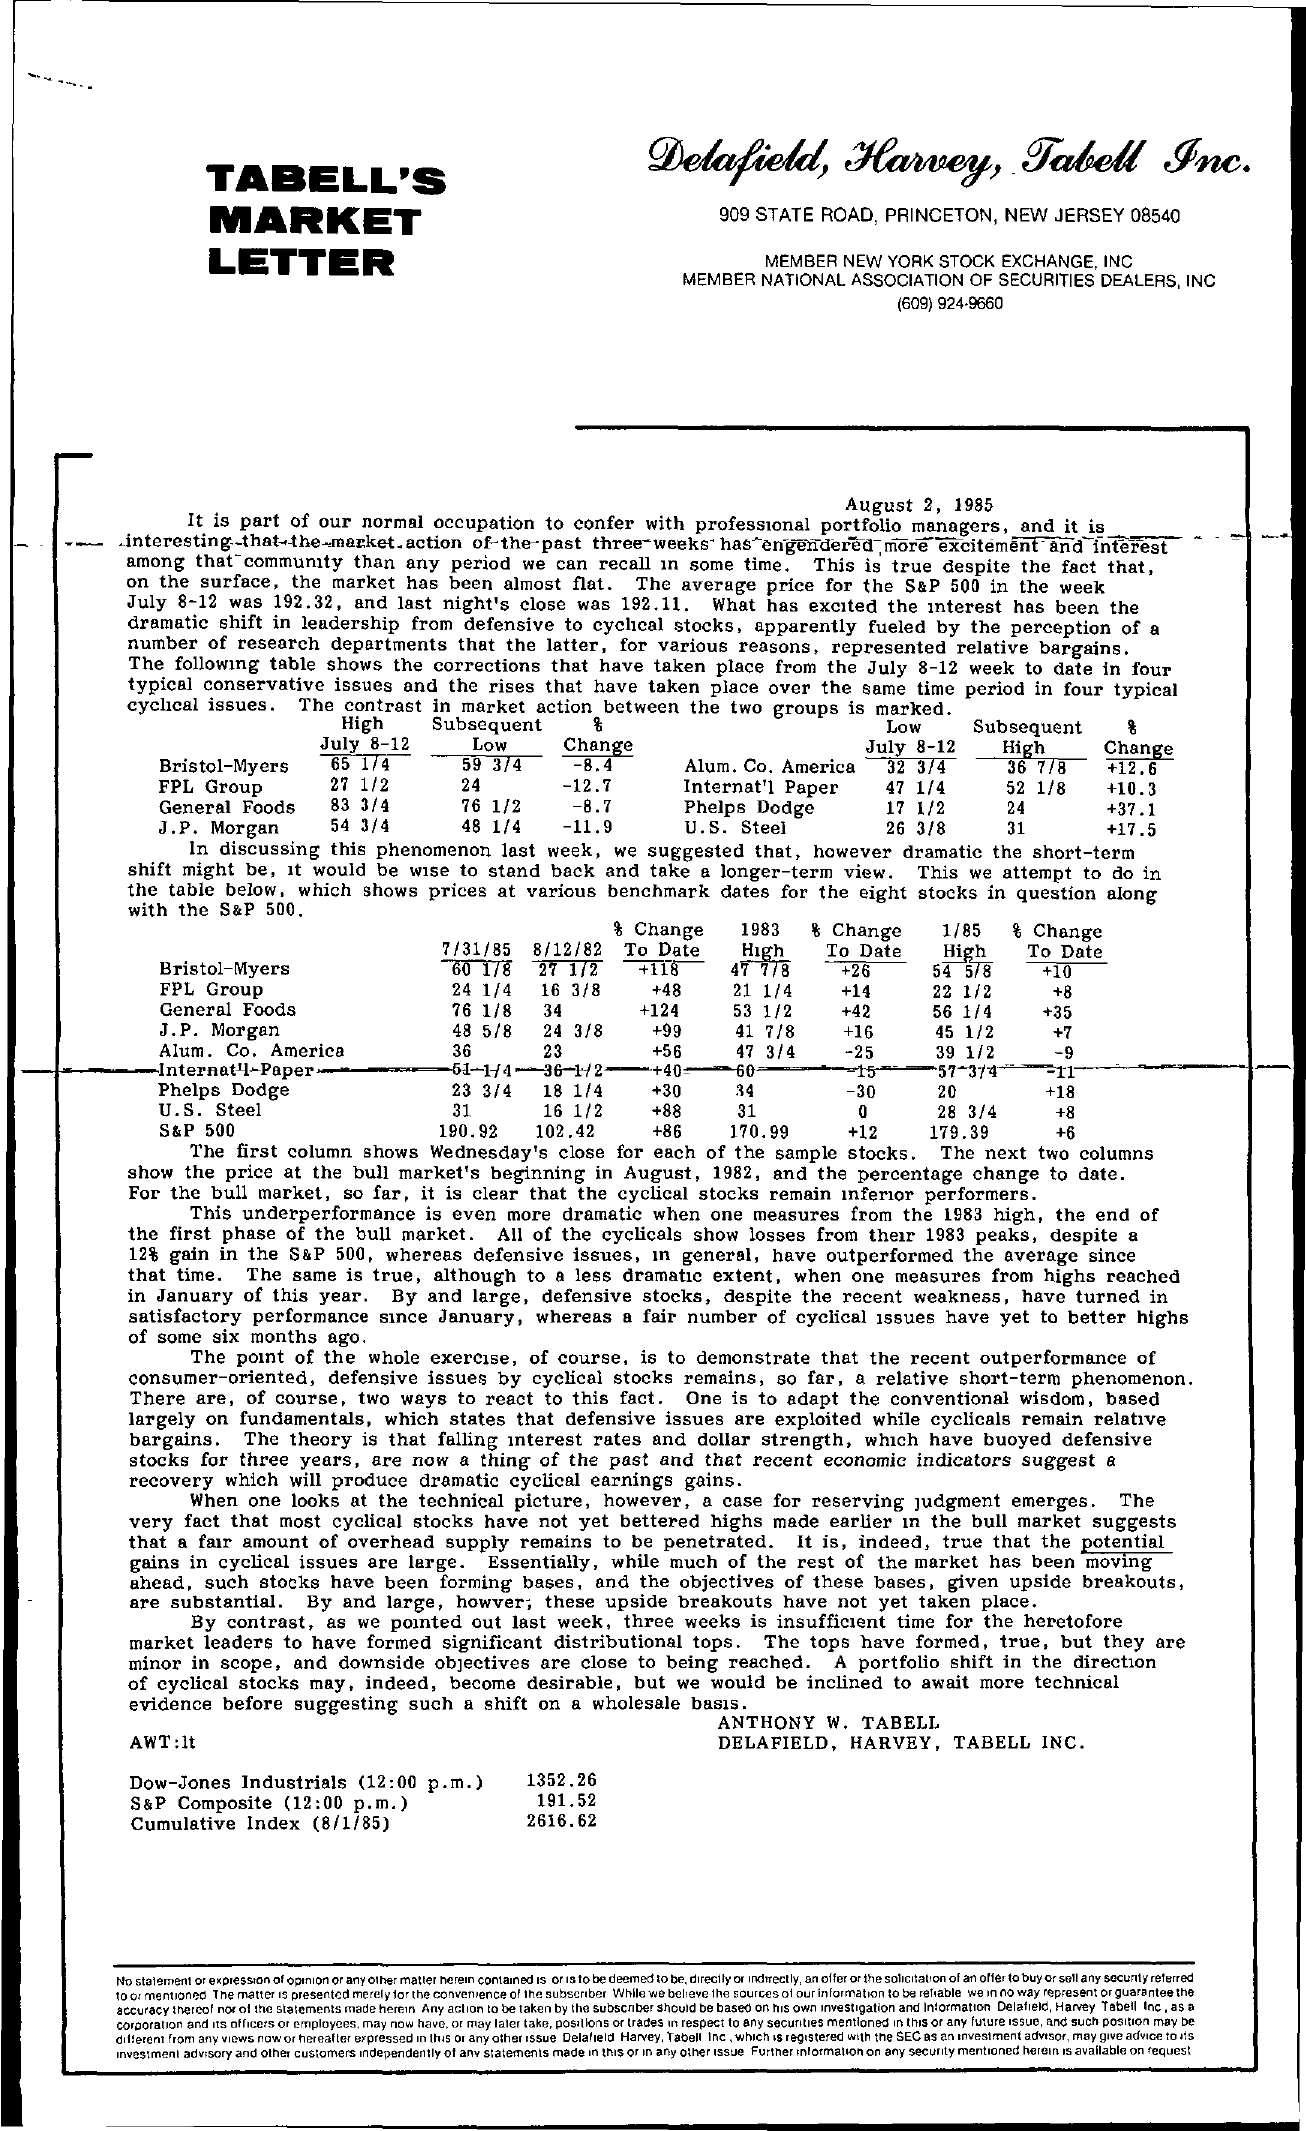 Tabell's Market Letter - August 02, 1985